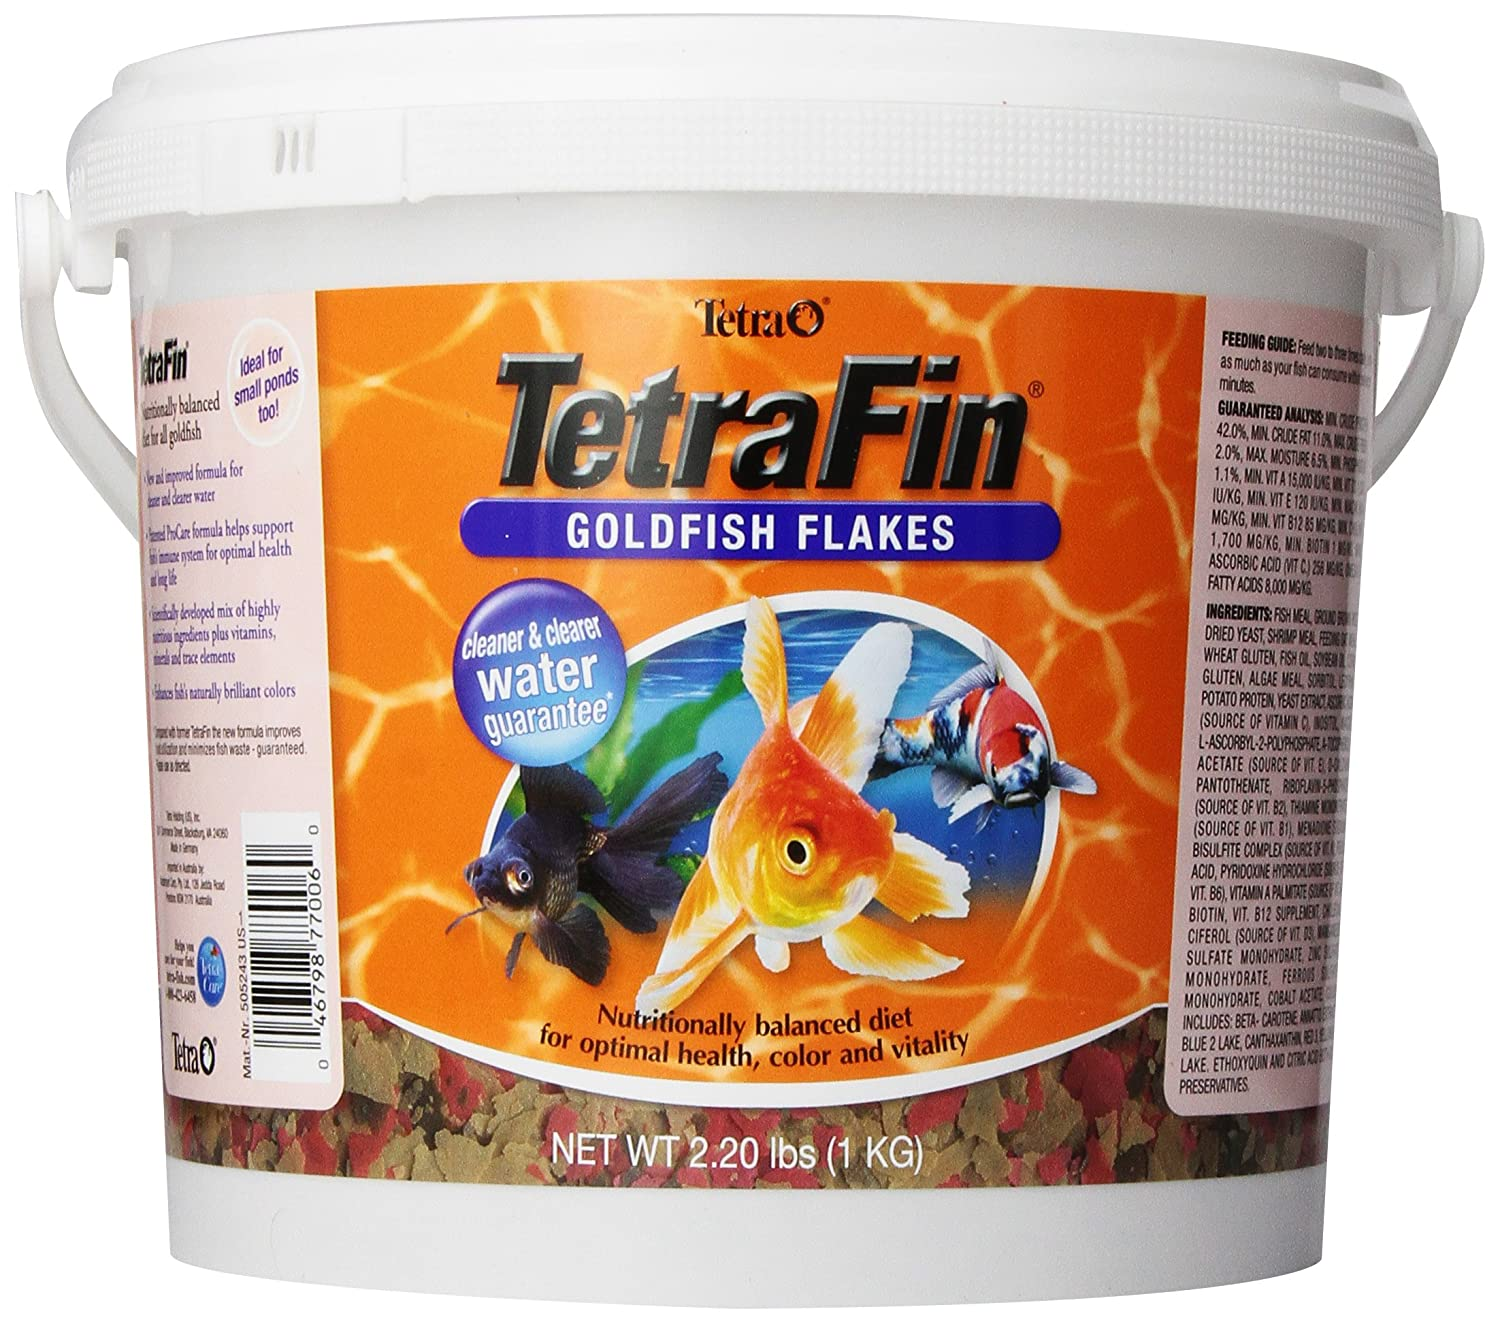 Tetra TetraFin Goldfish Flakes with ProCare, Goldfish Food ...